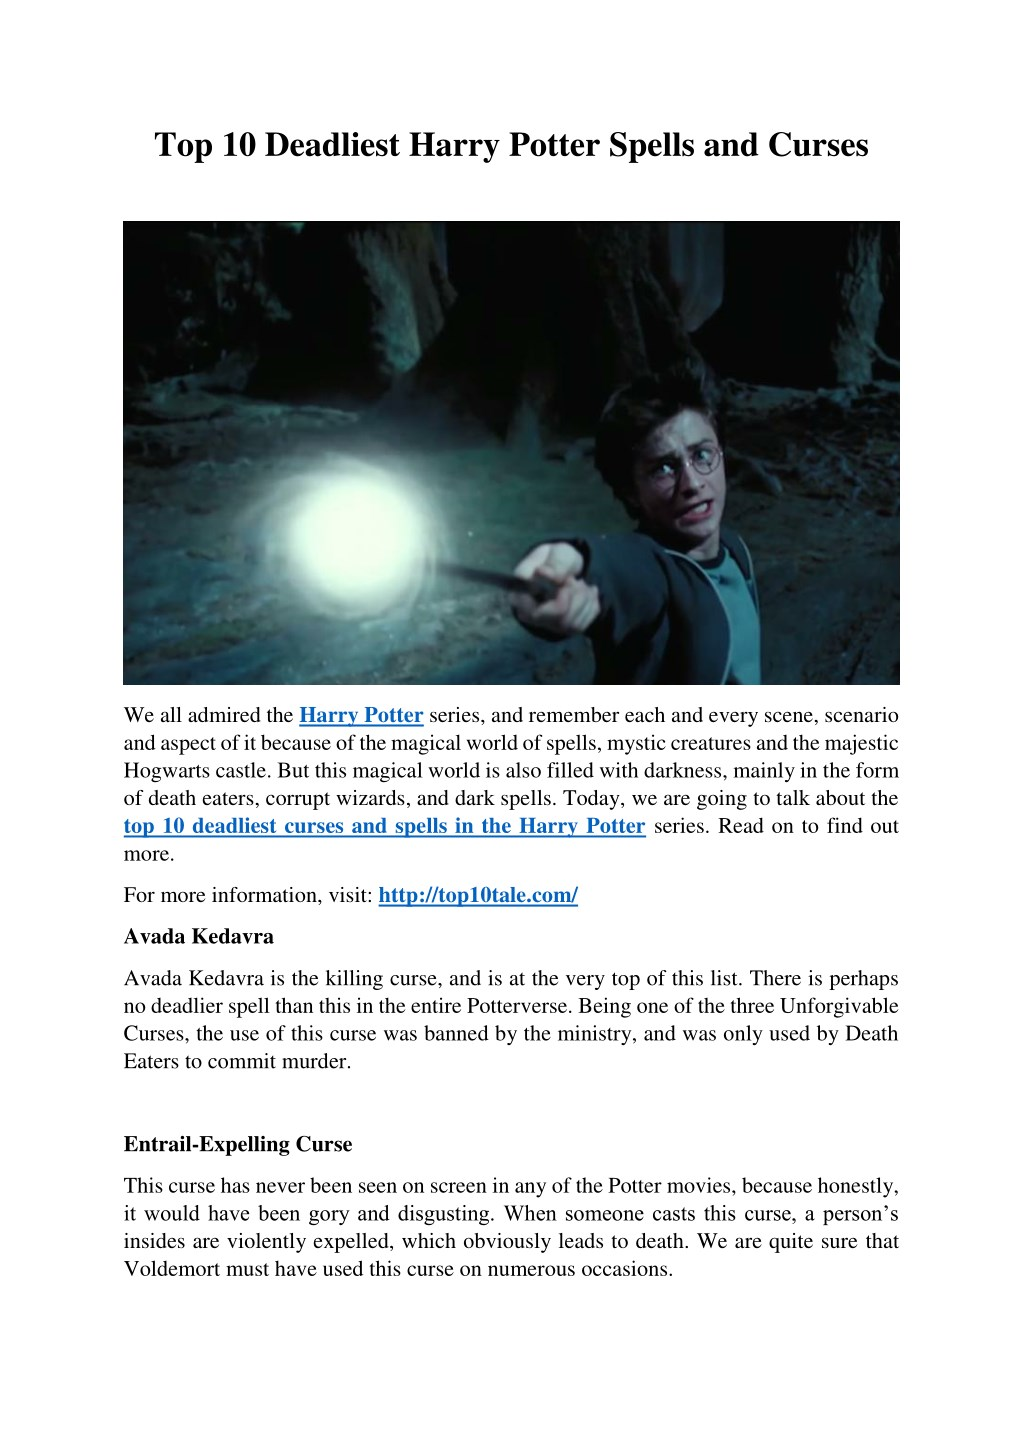 PPT - Top 10 Deadliest Harry Potter Spells and Curses PowerPoint